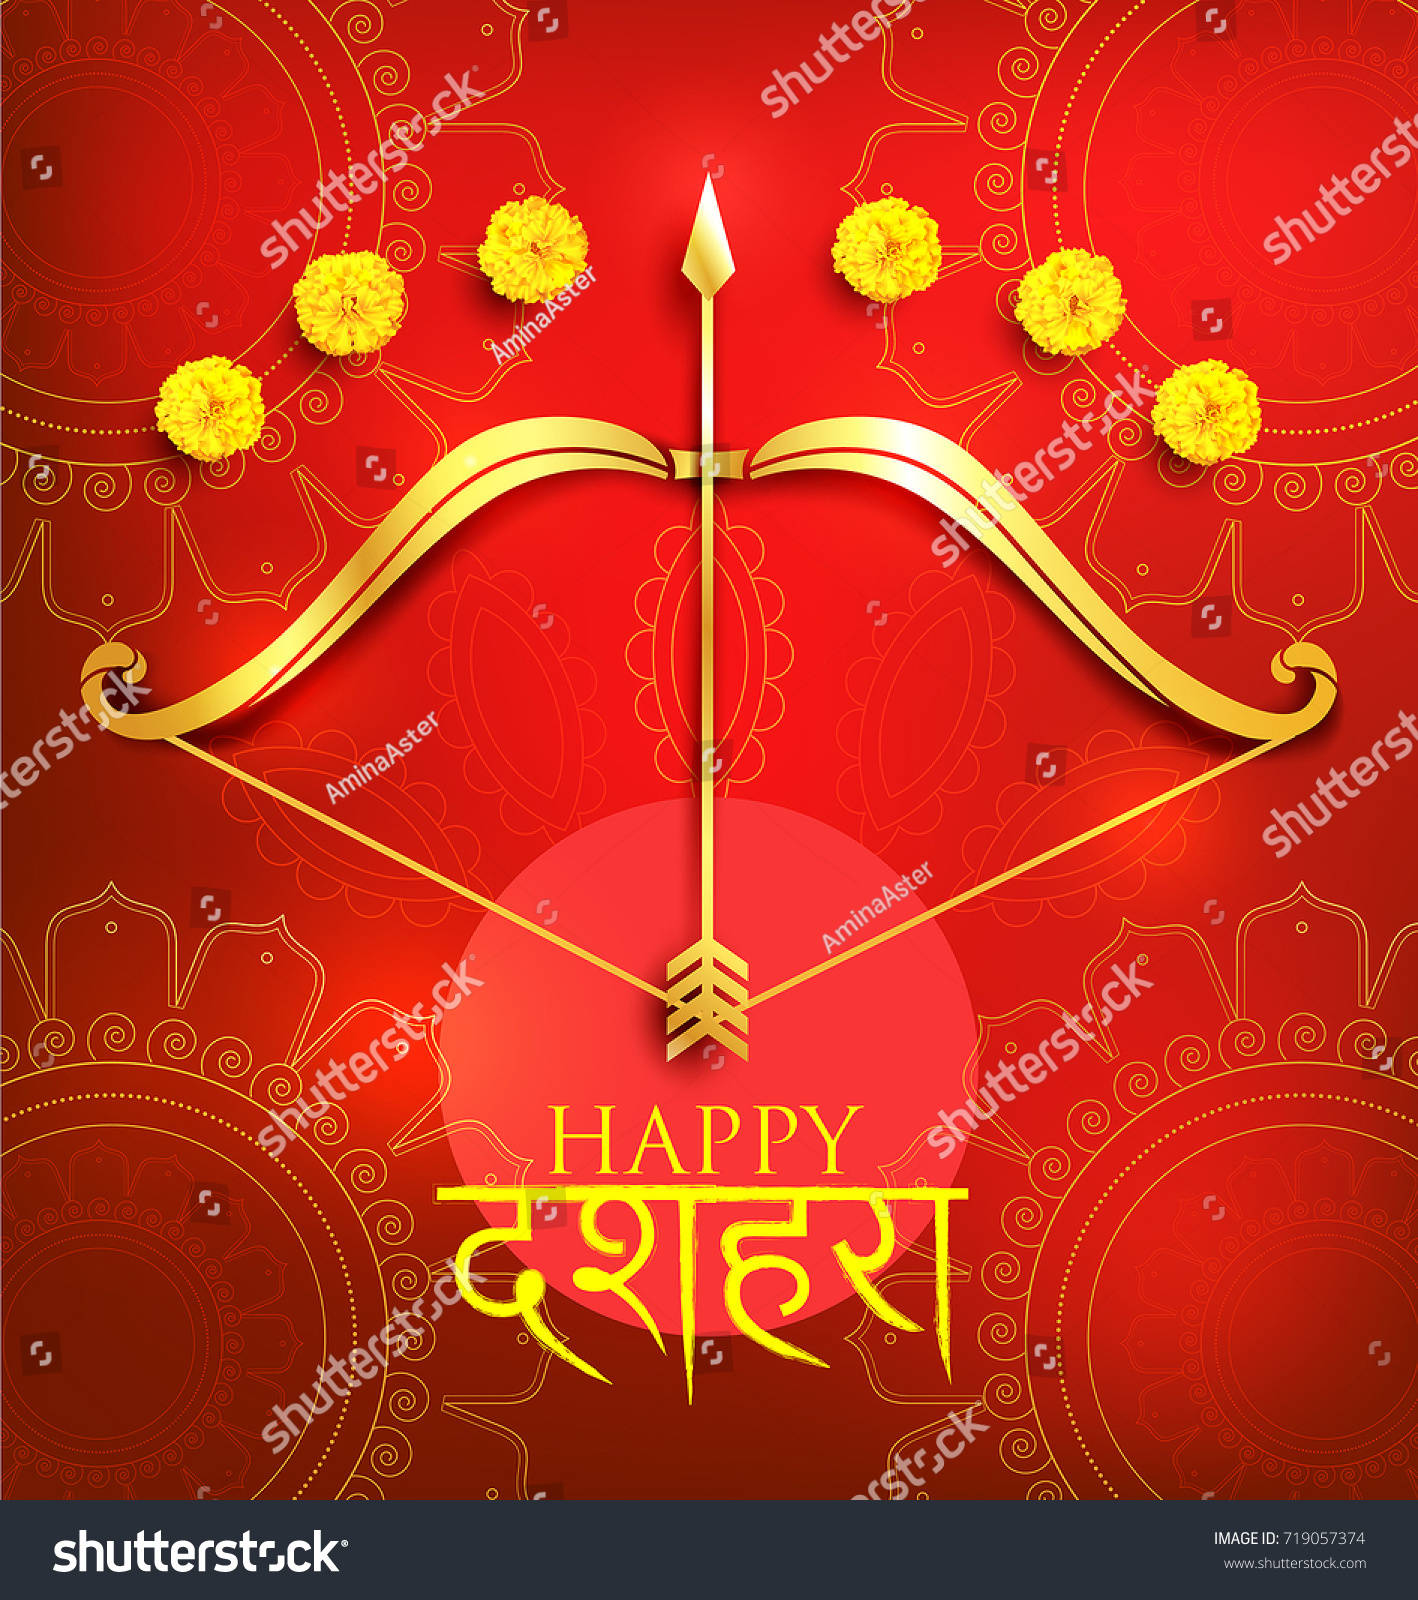 Greeting card bow arrow navratri festival stock vector 719057374 greeting card with bow and arrow for navratri festival with hindi text meaning dussehra hindu kristyandbryce Choice Image